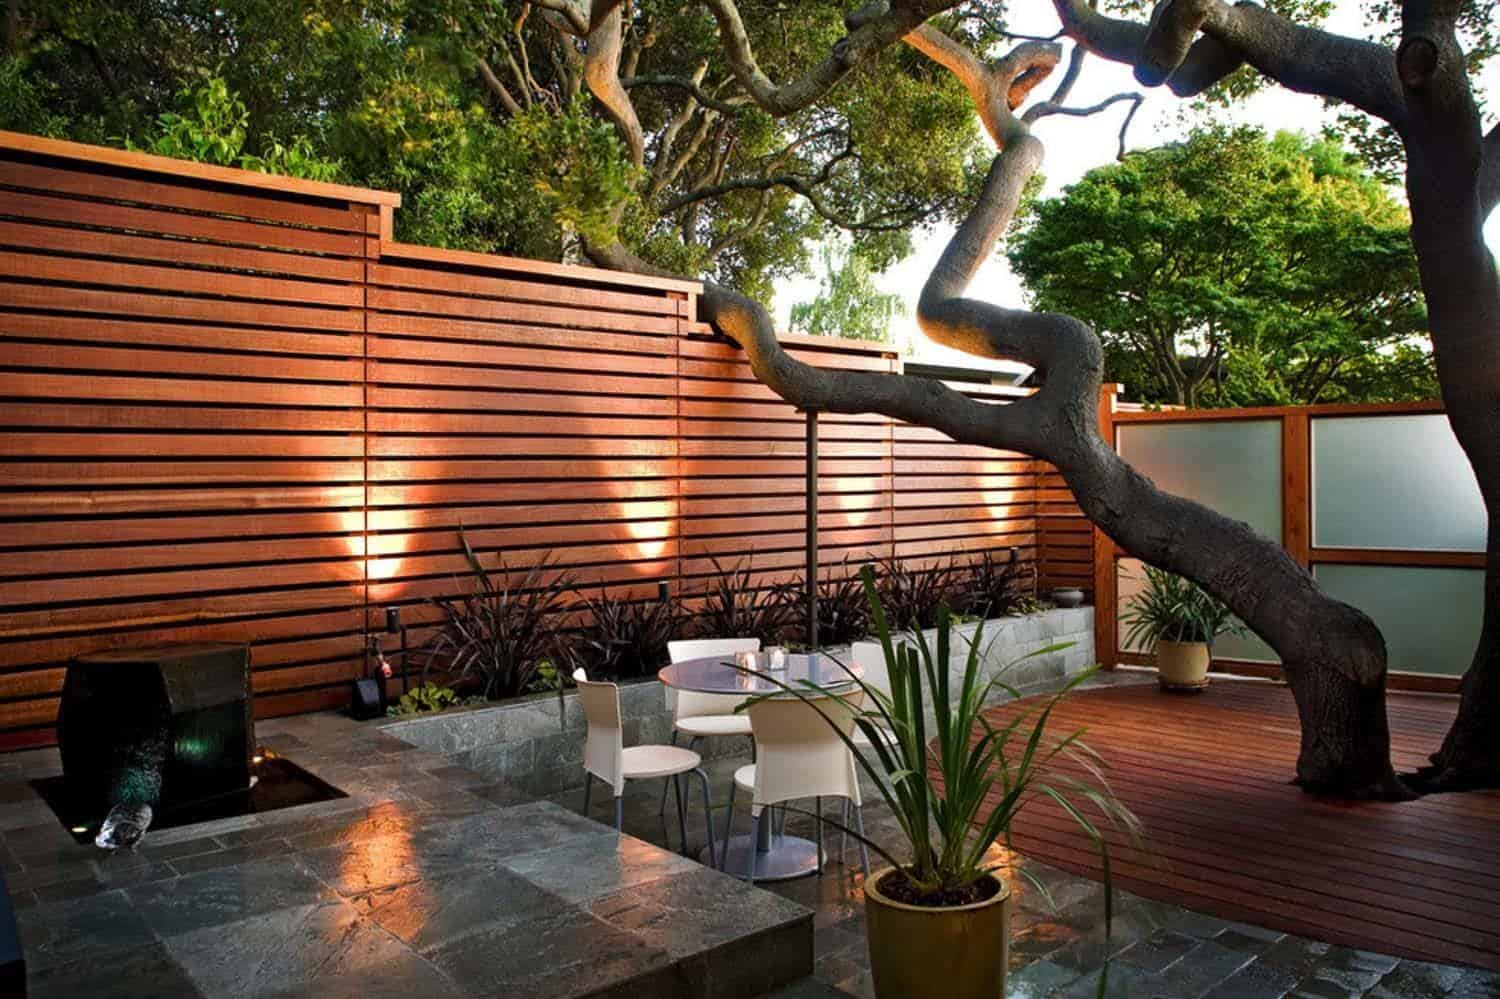 Charmant Modern Outdoor Patio Design 29 1 Kindesign